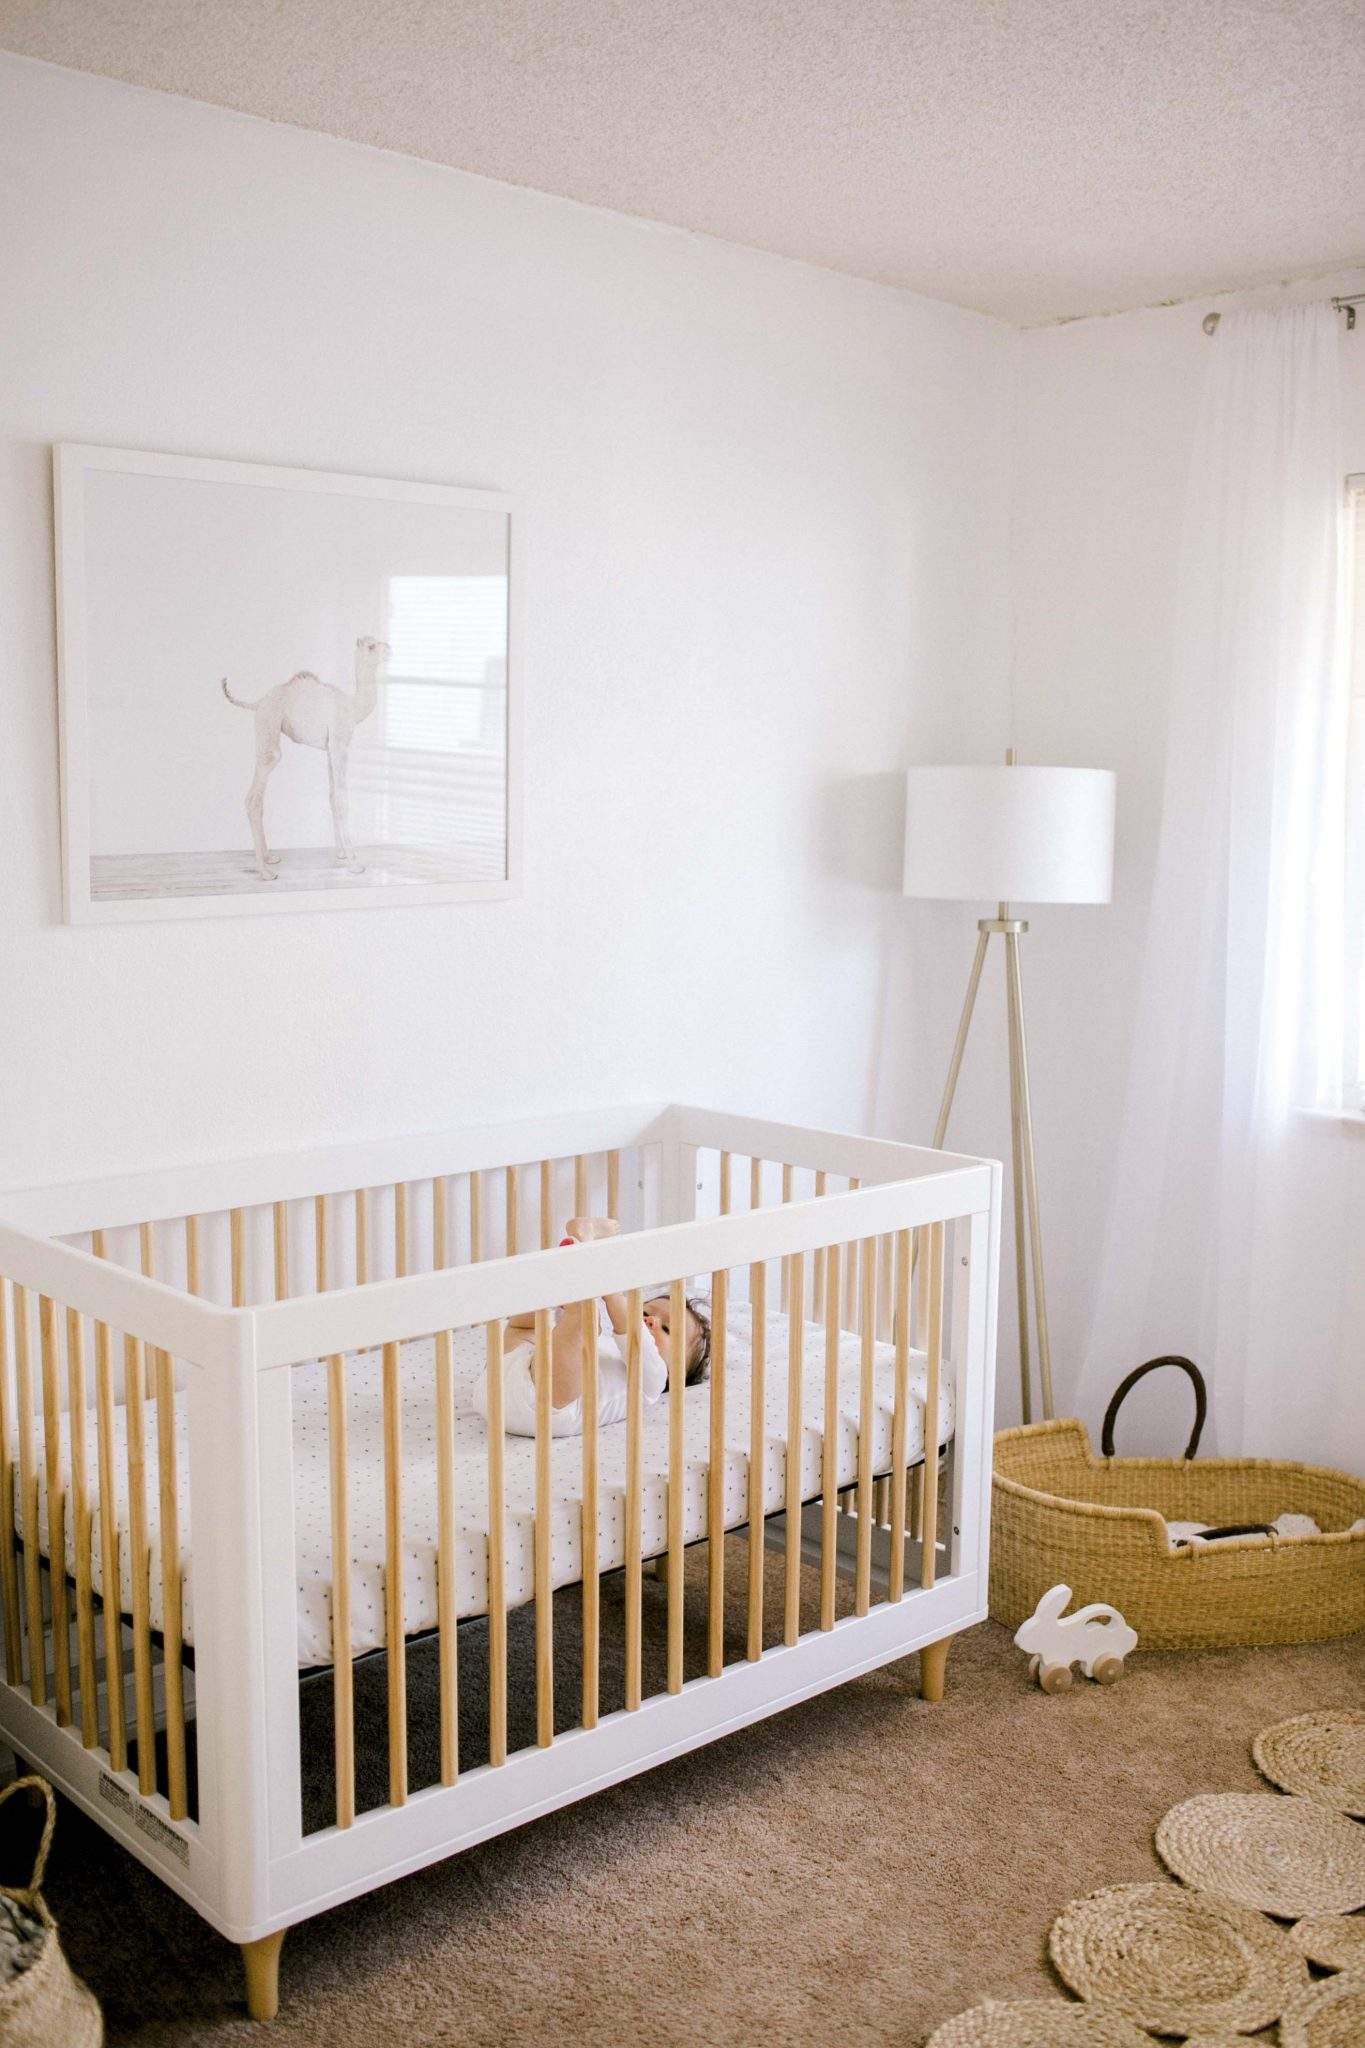 Sproutling, Sproutling baby monitor, Fisher Price